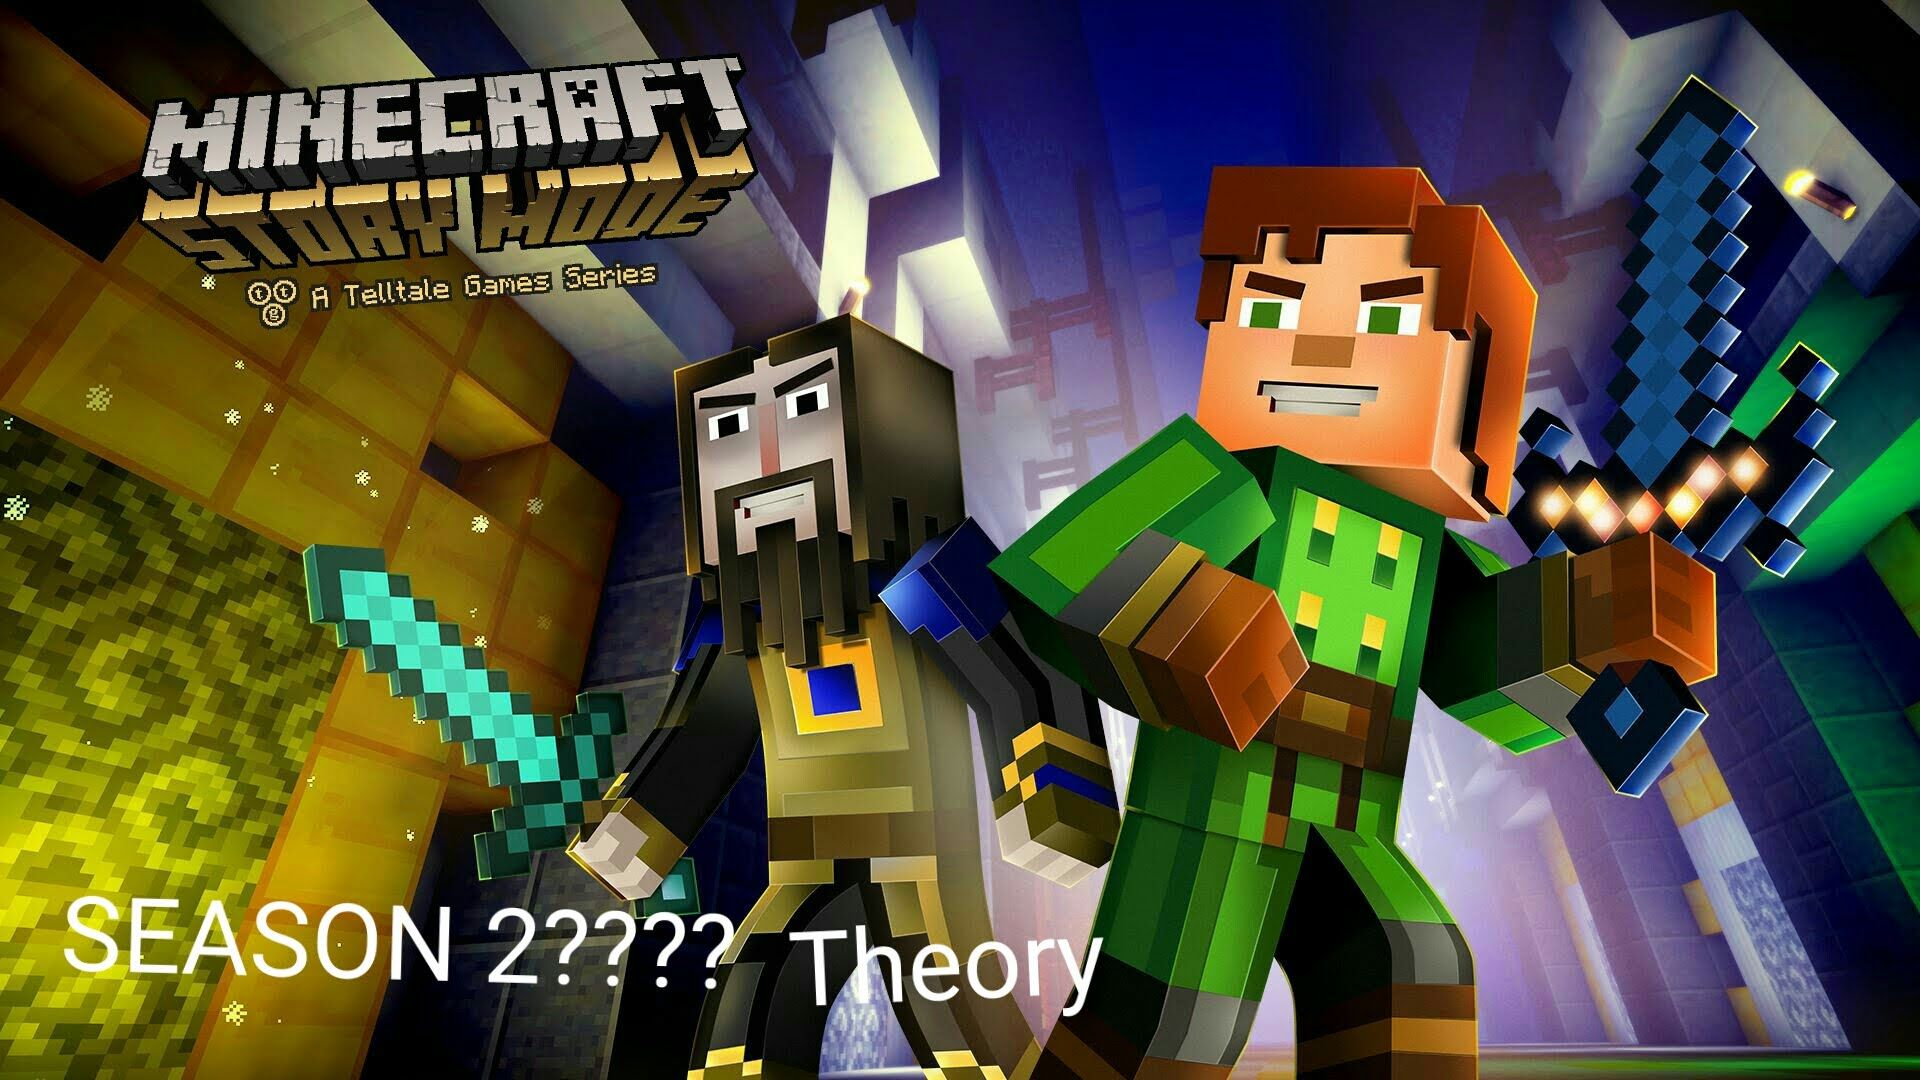 Minecraft: Story Mode - Season Two v1 01 Apk download Direct